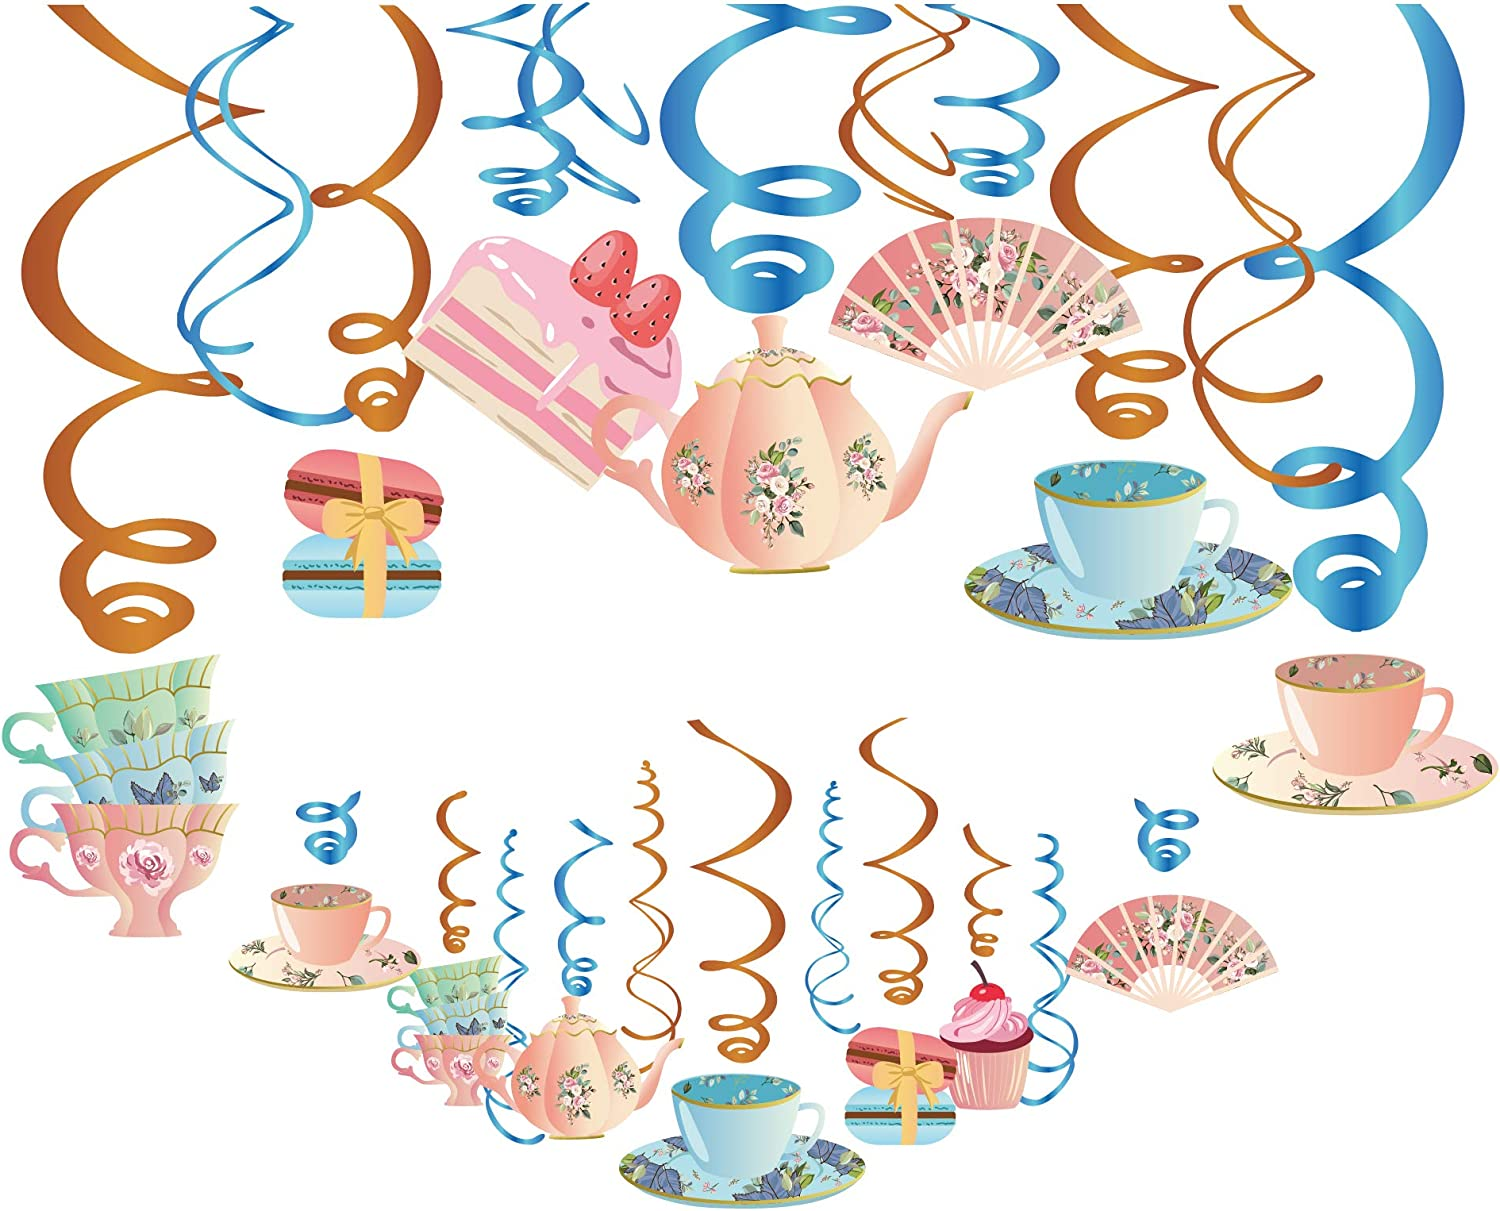 CC HOME Floral Tea Party Hanging Swirl Decorations 30ct,Garden Flower Blossom party Supplies,Teapots And Teacups Tea Party Decorations Bridal Shower Baby Shower Girls Birthday Ideas